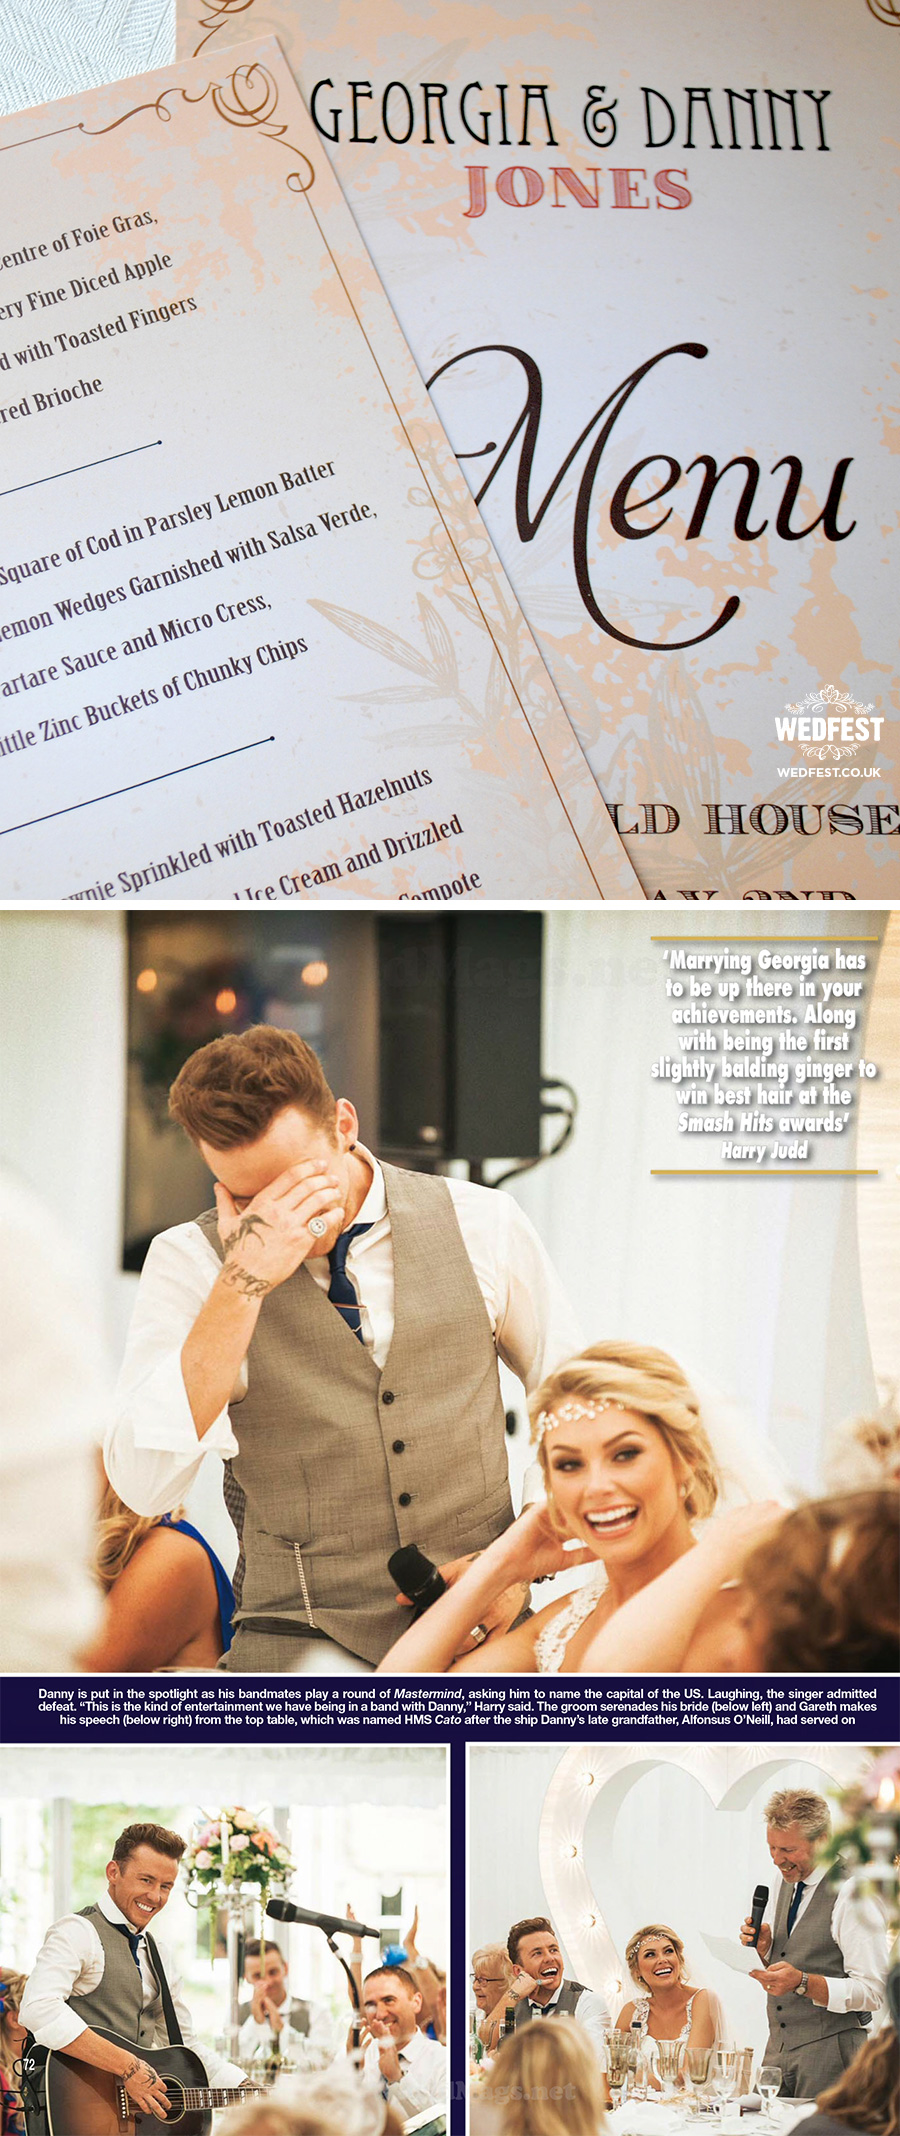 mcbusted wedding stationery hello magazine danny-jones